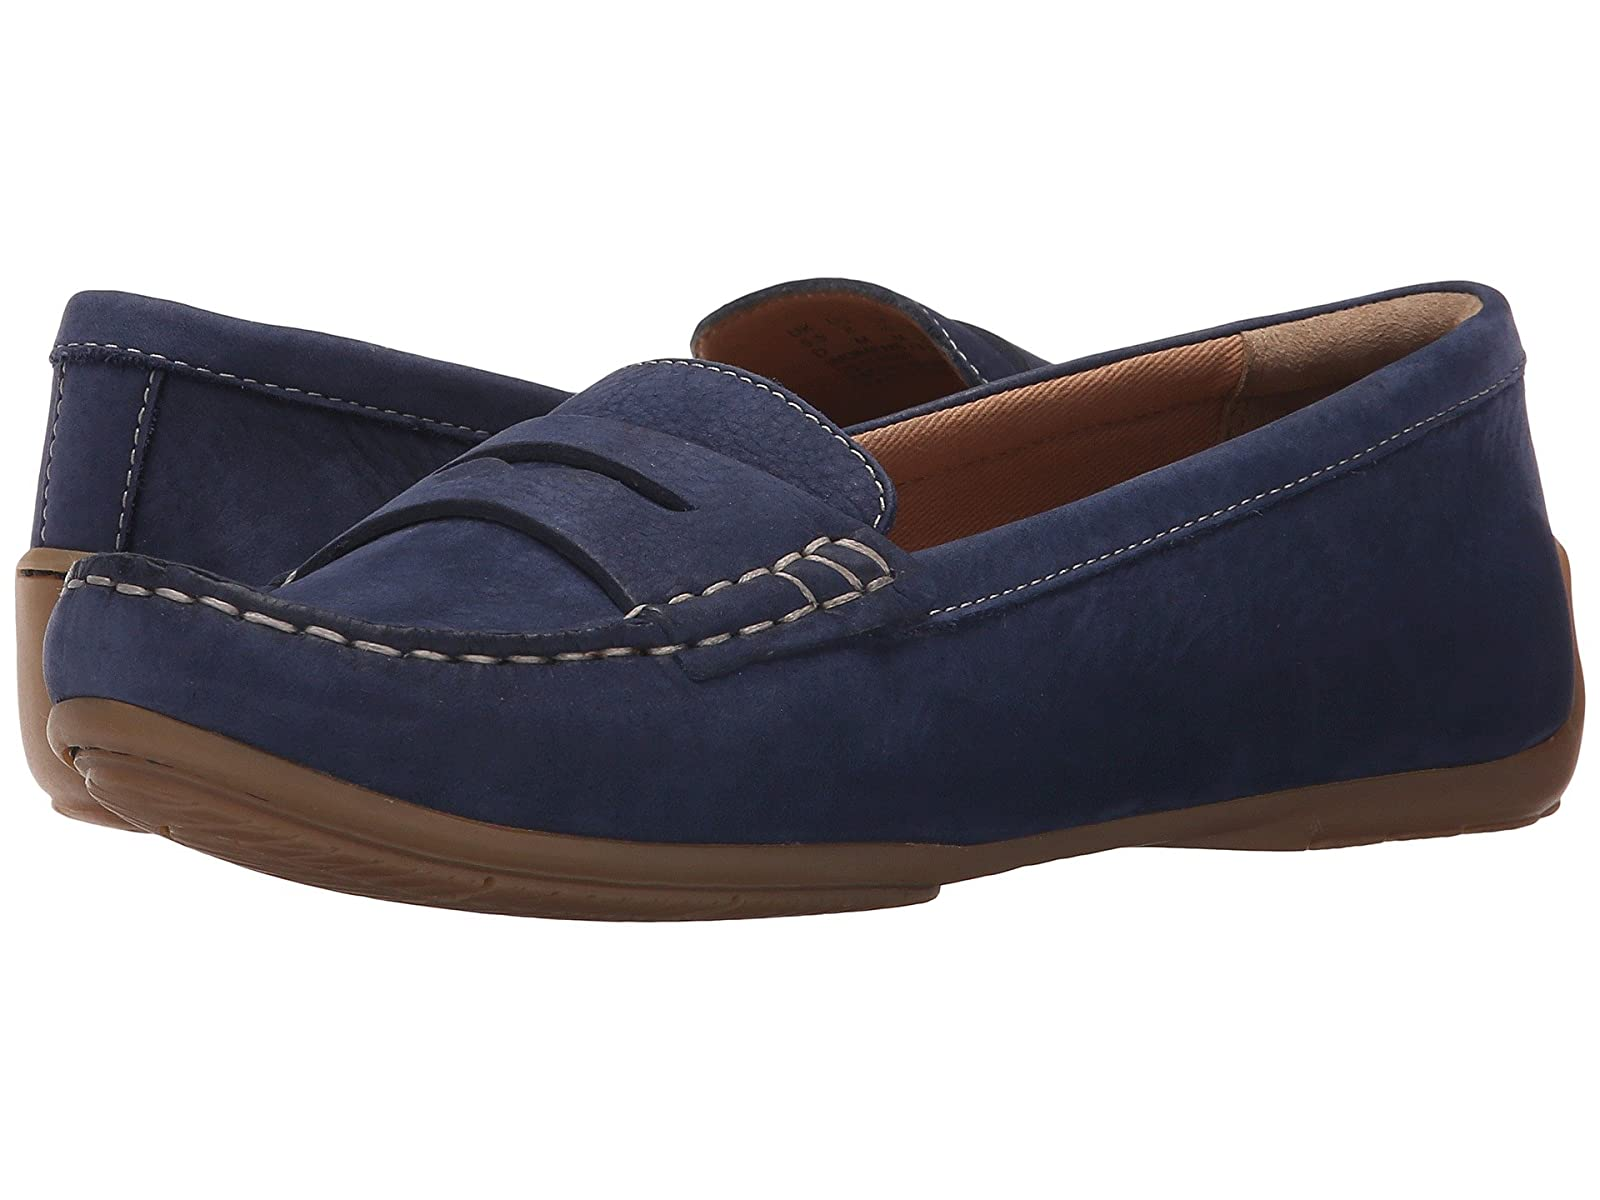 Clarks Doraville NestCheap and distinctive eye-catching shoes